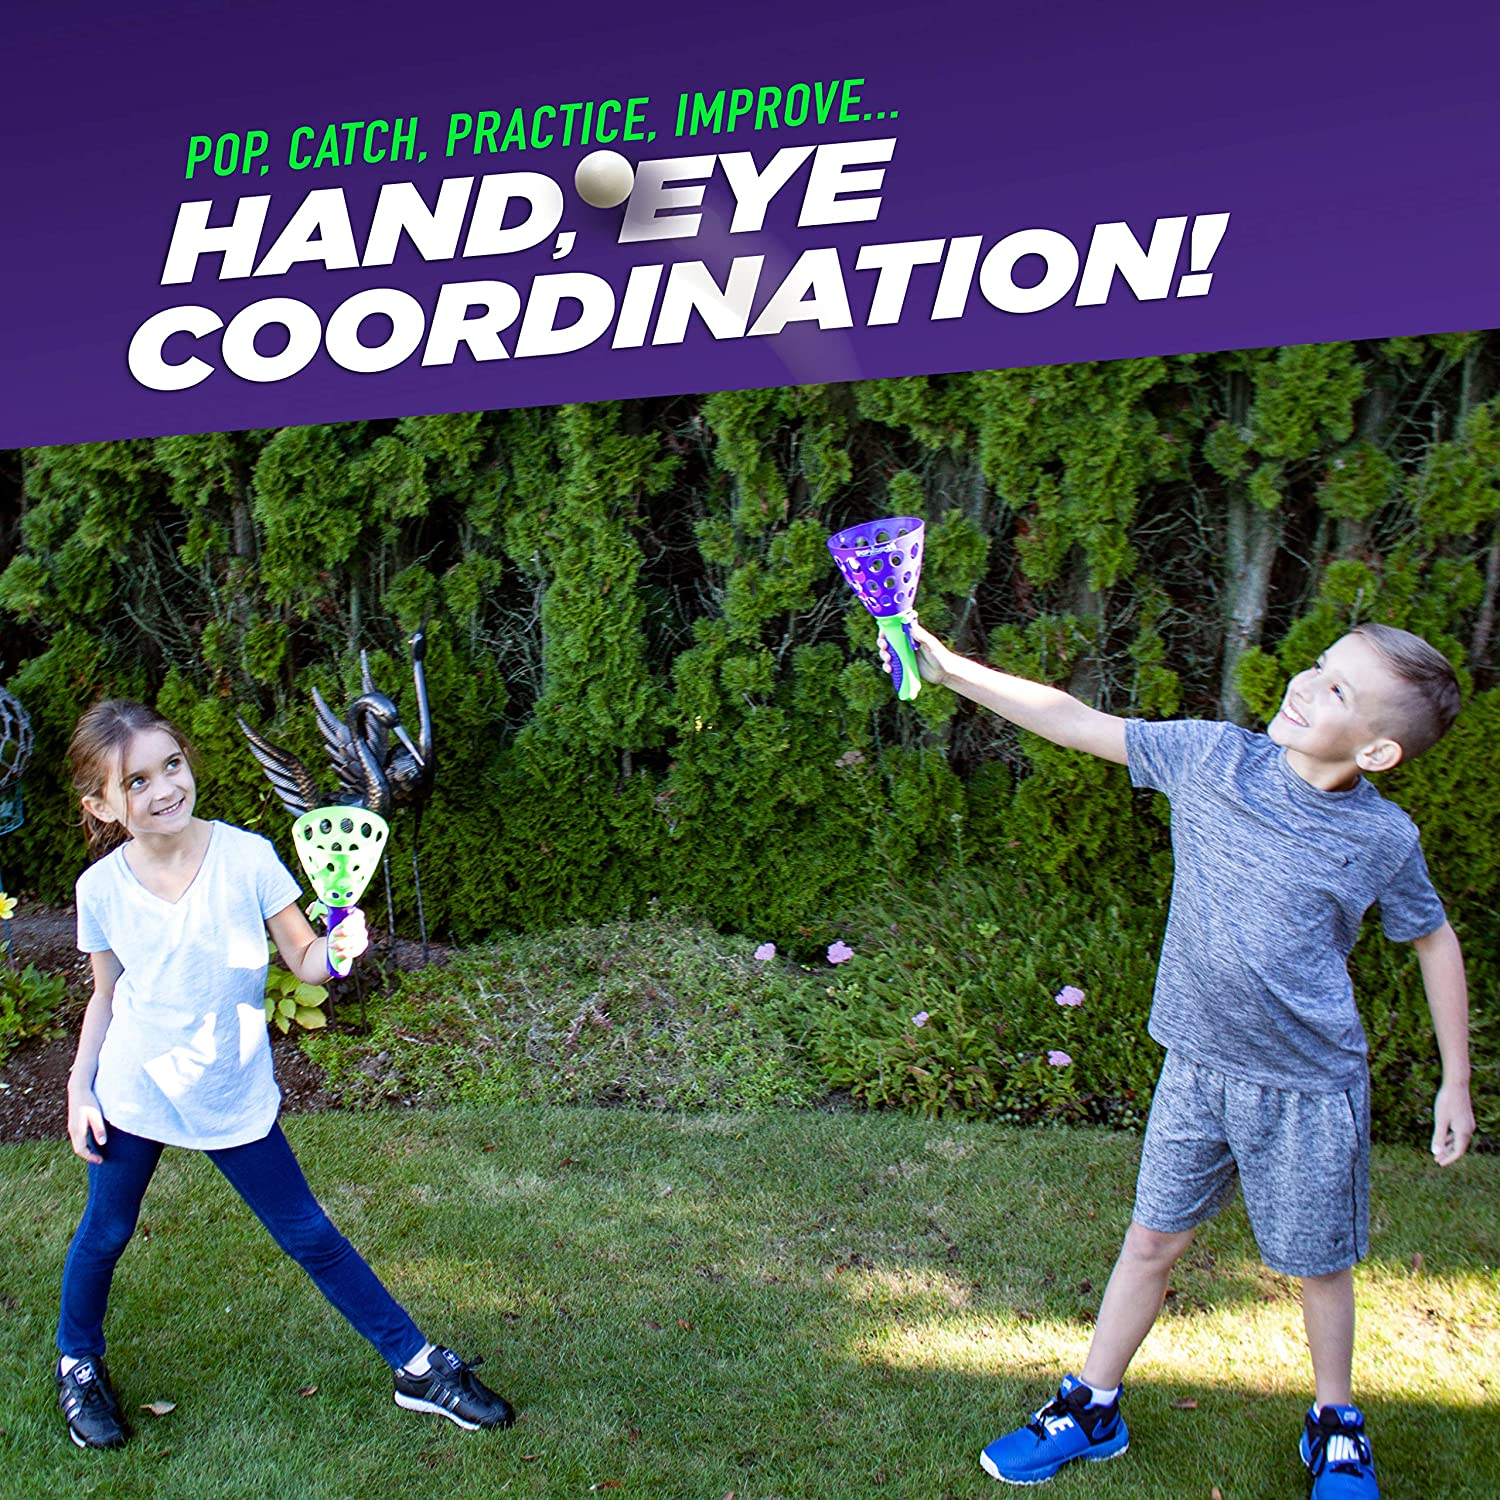 2 Pack of Two Launchers Each Purple//Green Geosapce Geospace 12513 The Original Pop N Catch Game